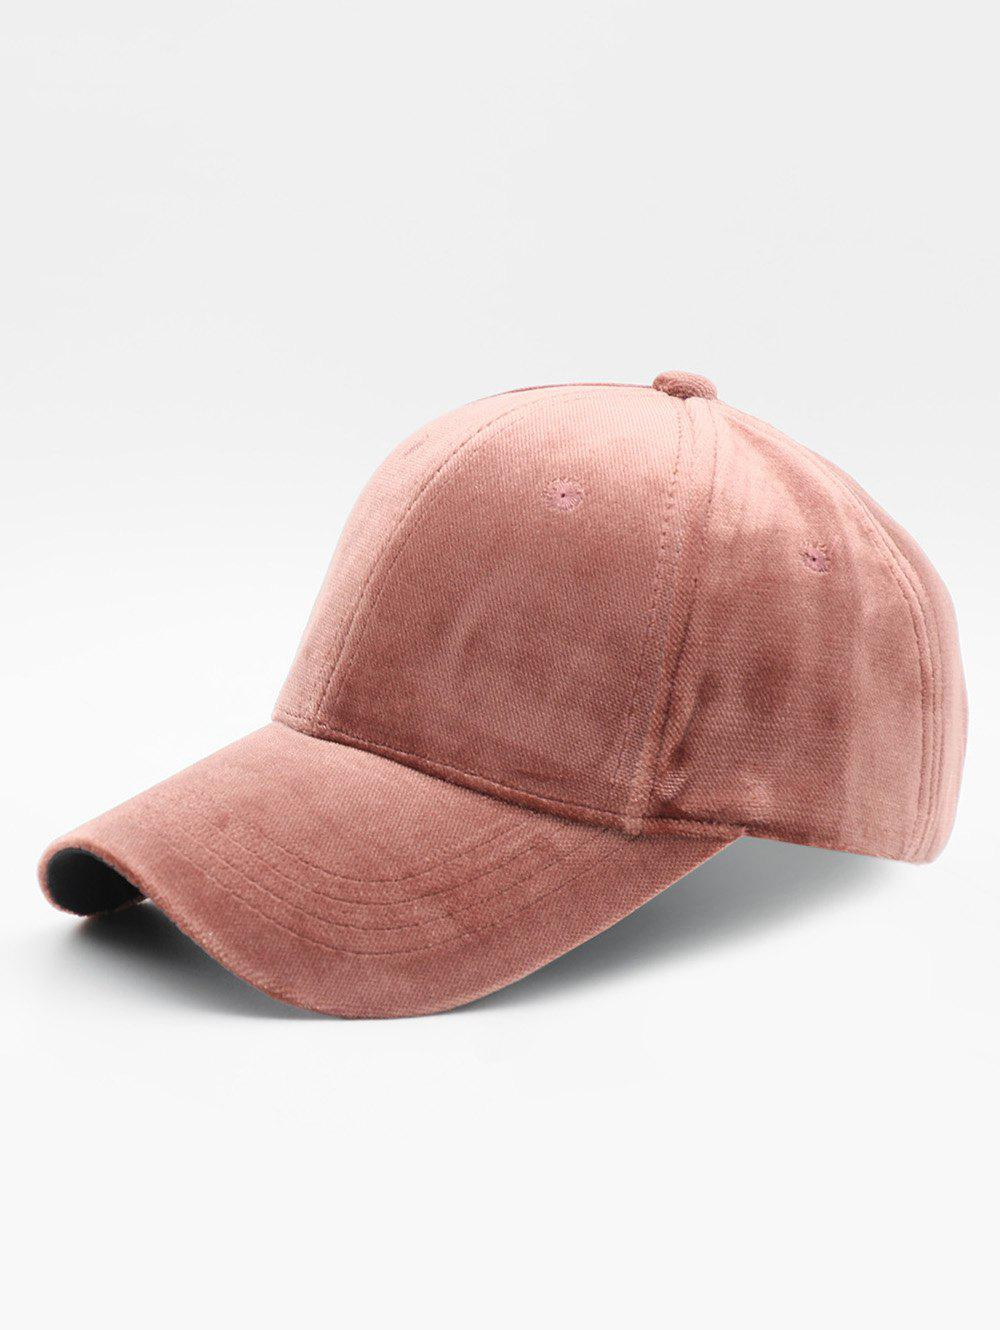 Shop Simple Style Suede Baseball Hat